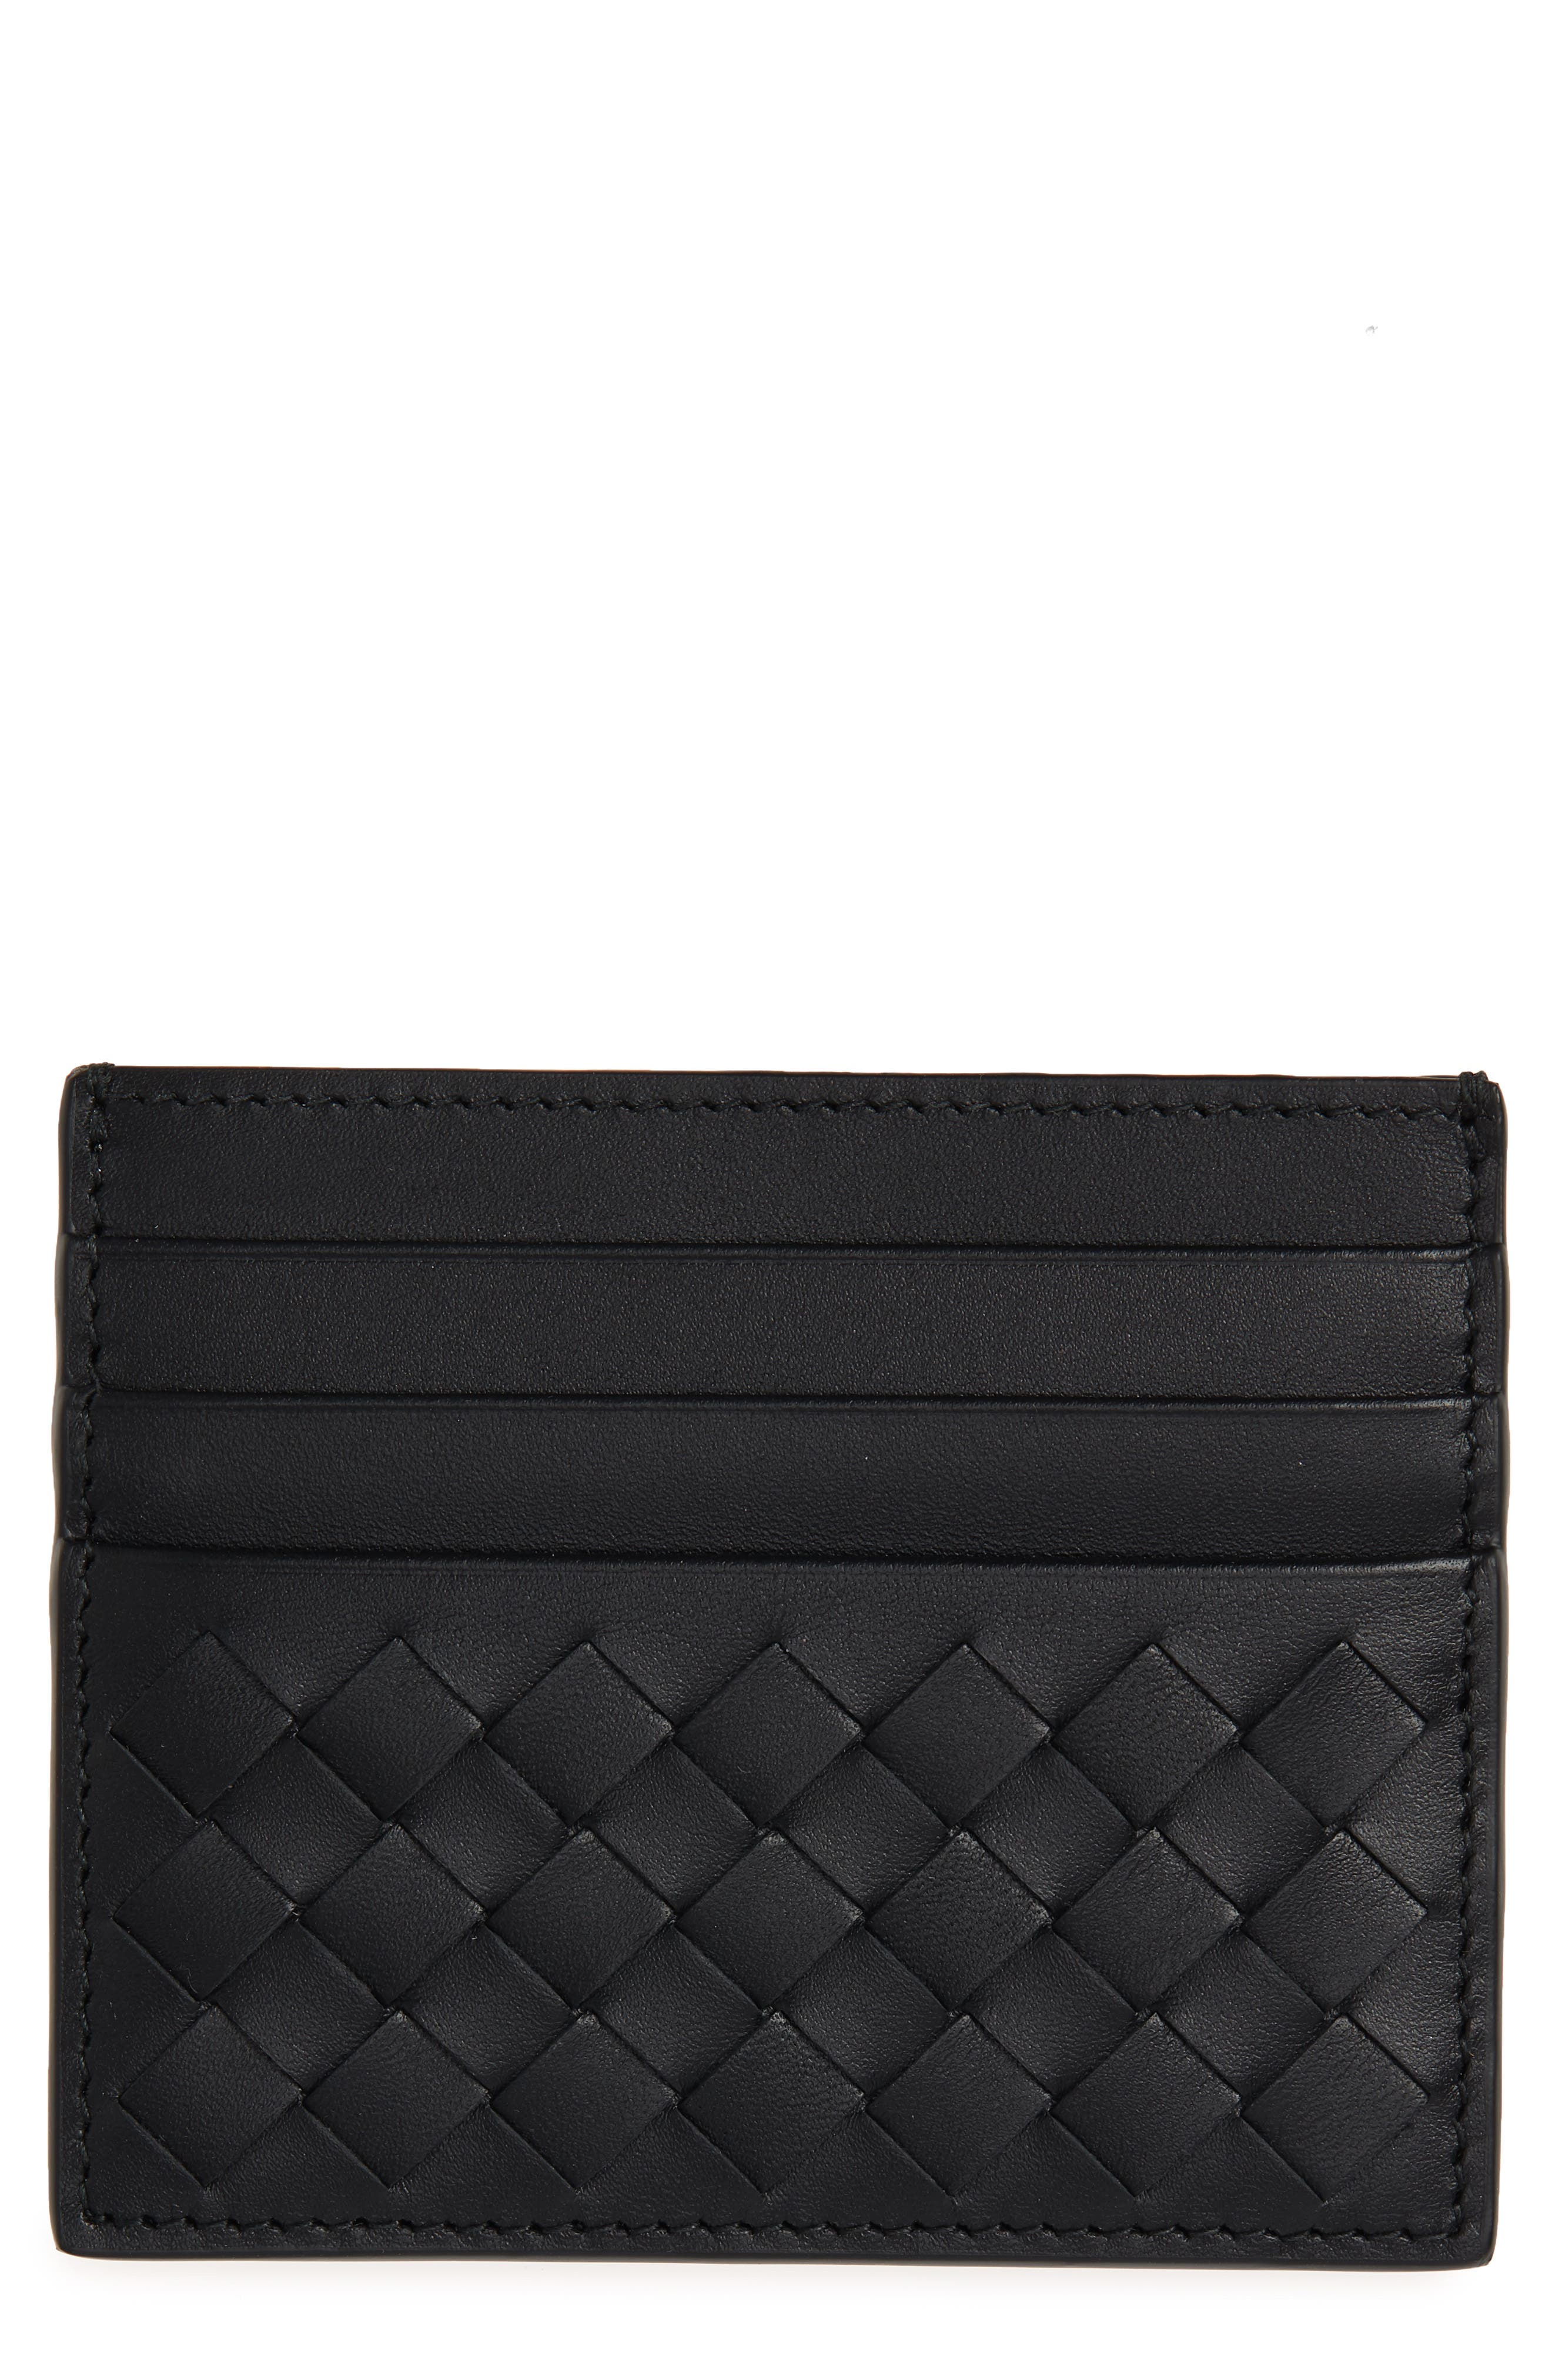 Woven Leather Card Case,                         Main,                         color, 1000 BLACK